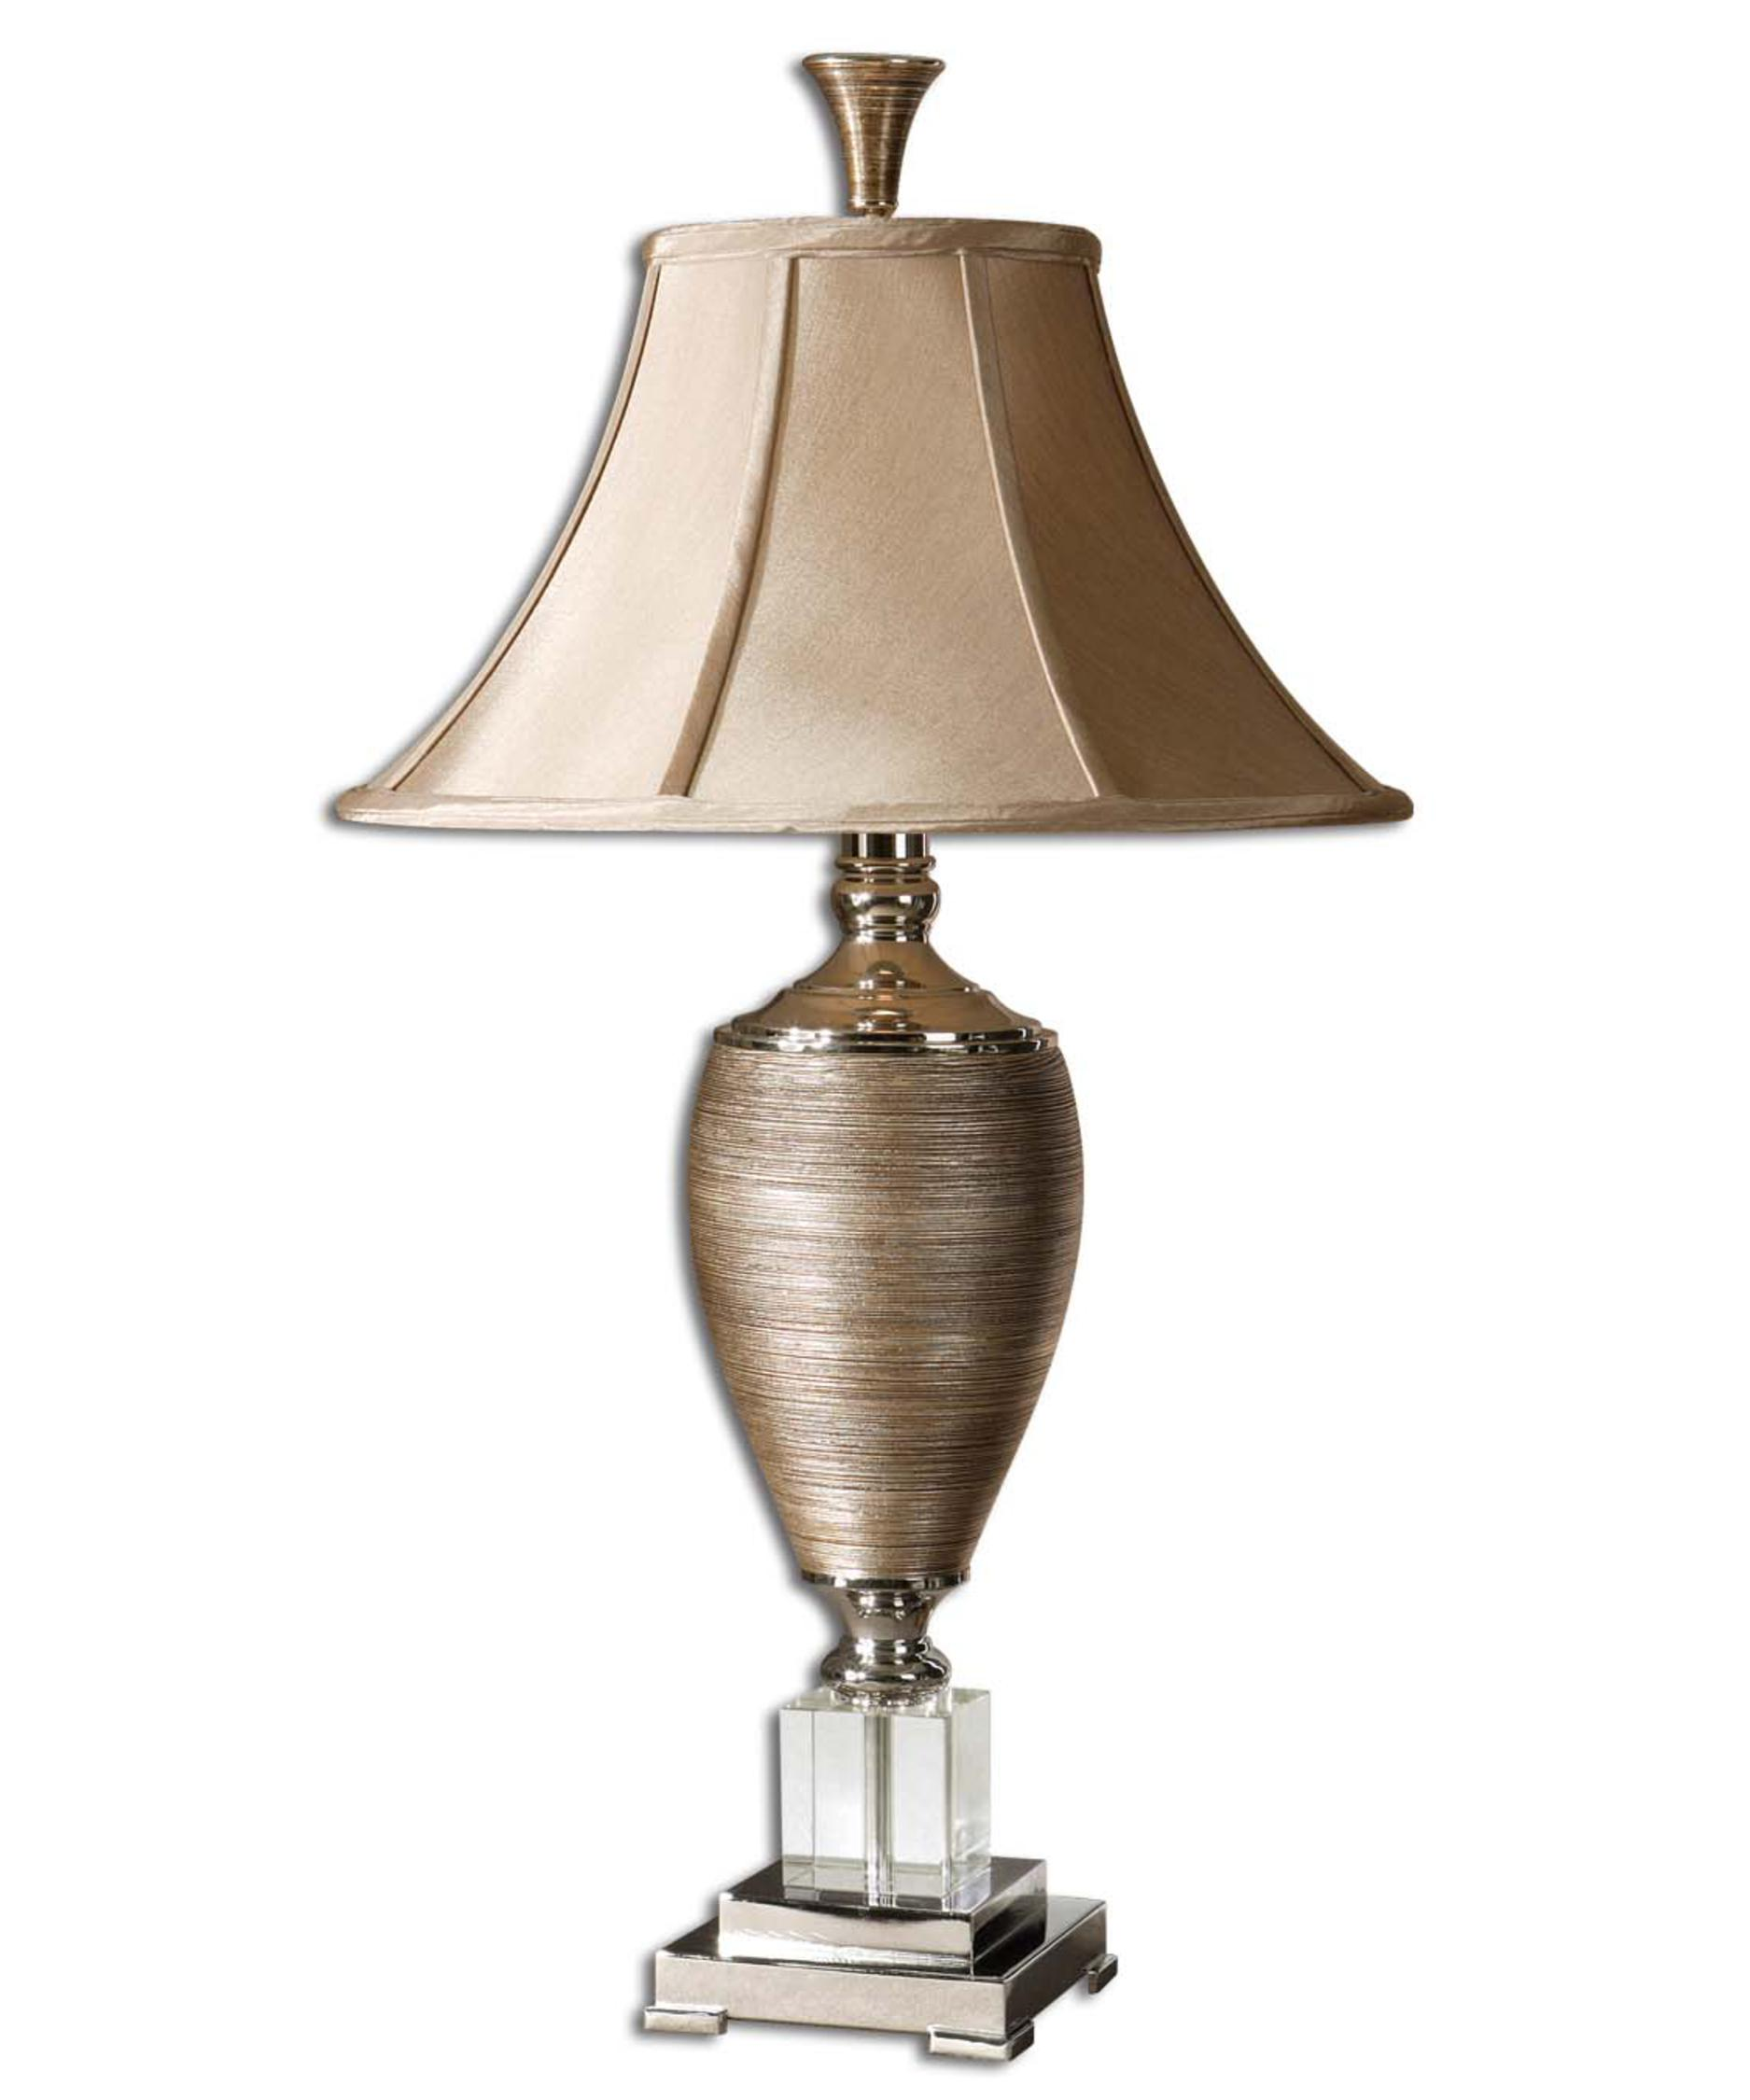 Shown In Metallic Gold Finish, Textured Porcelain Glass And Champagne  Fabric Shade